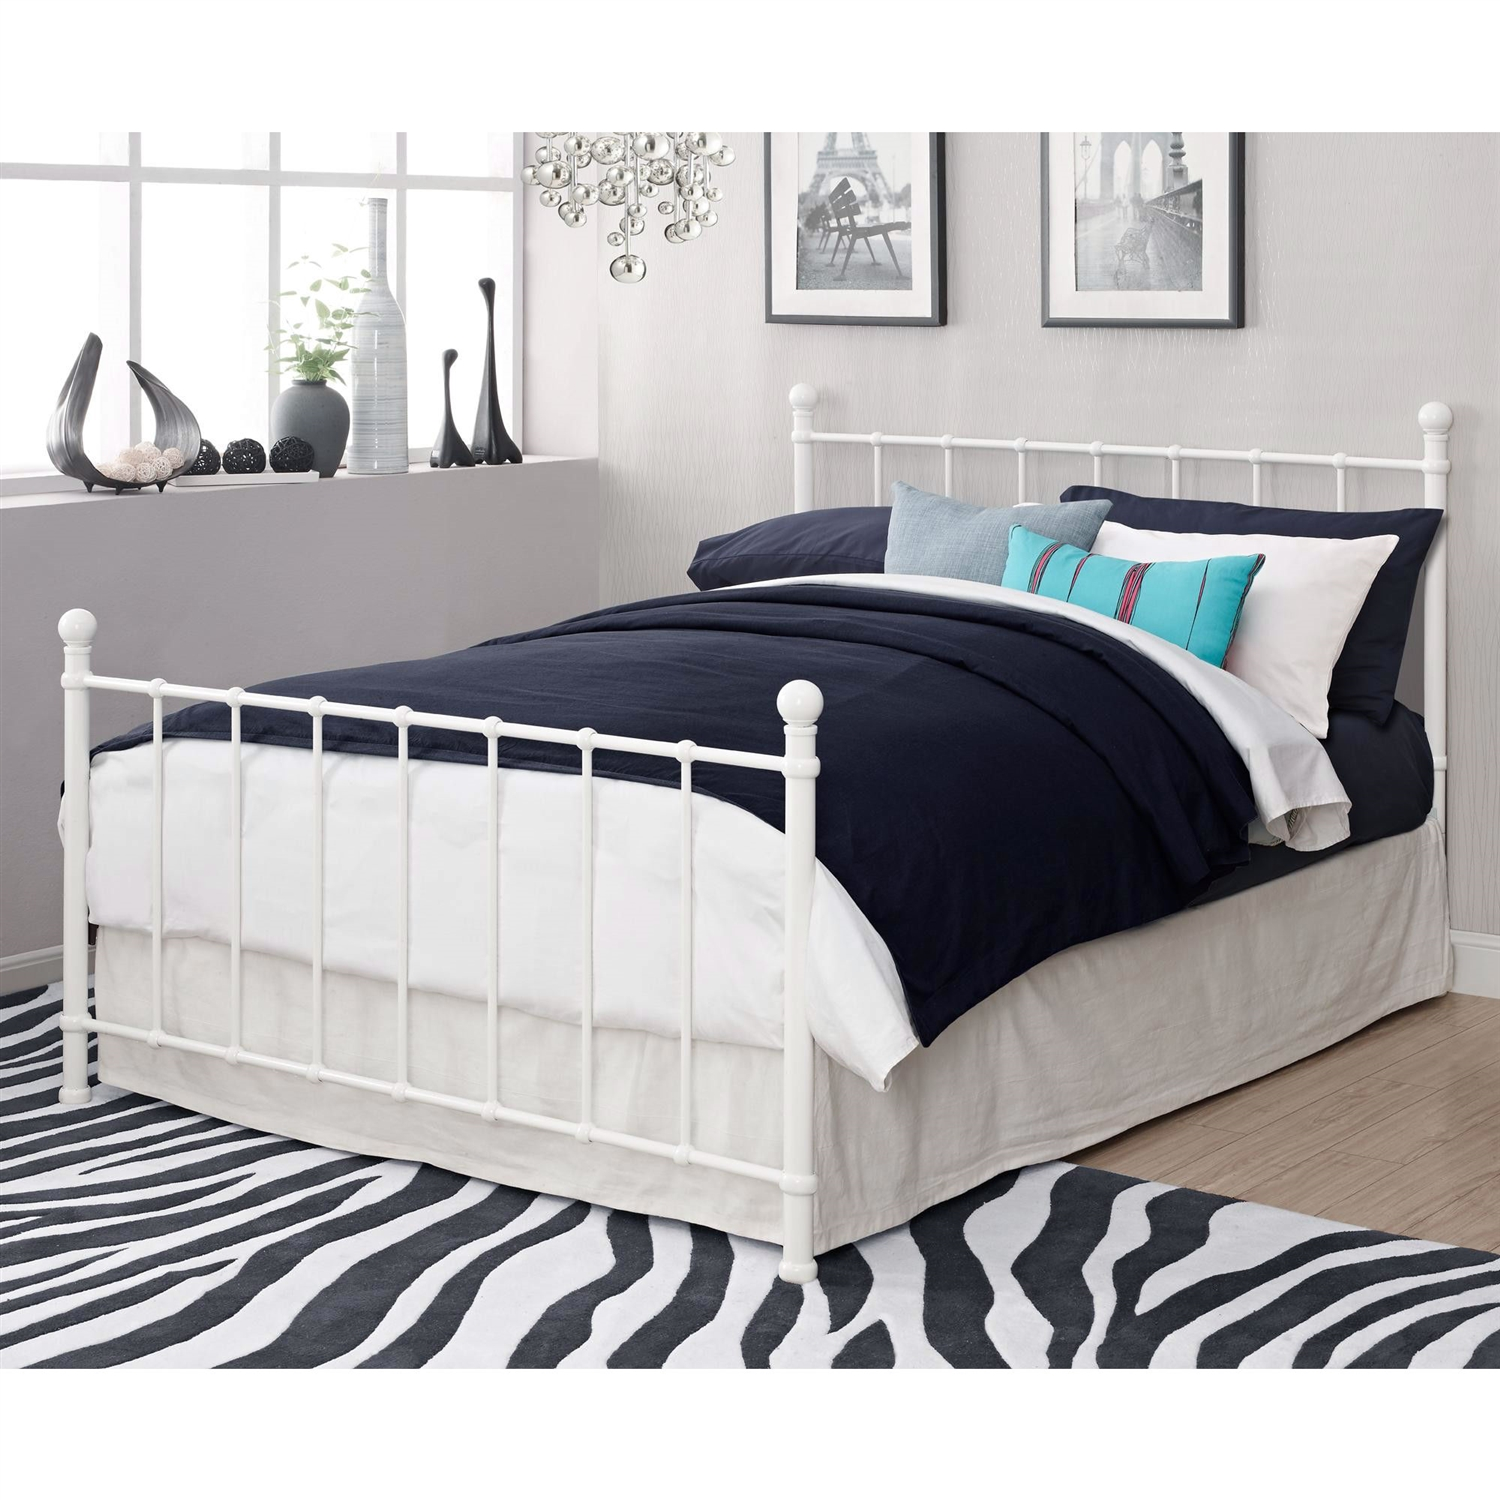 Full size White Metal Platform Bed Frame with Headboard and ...